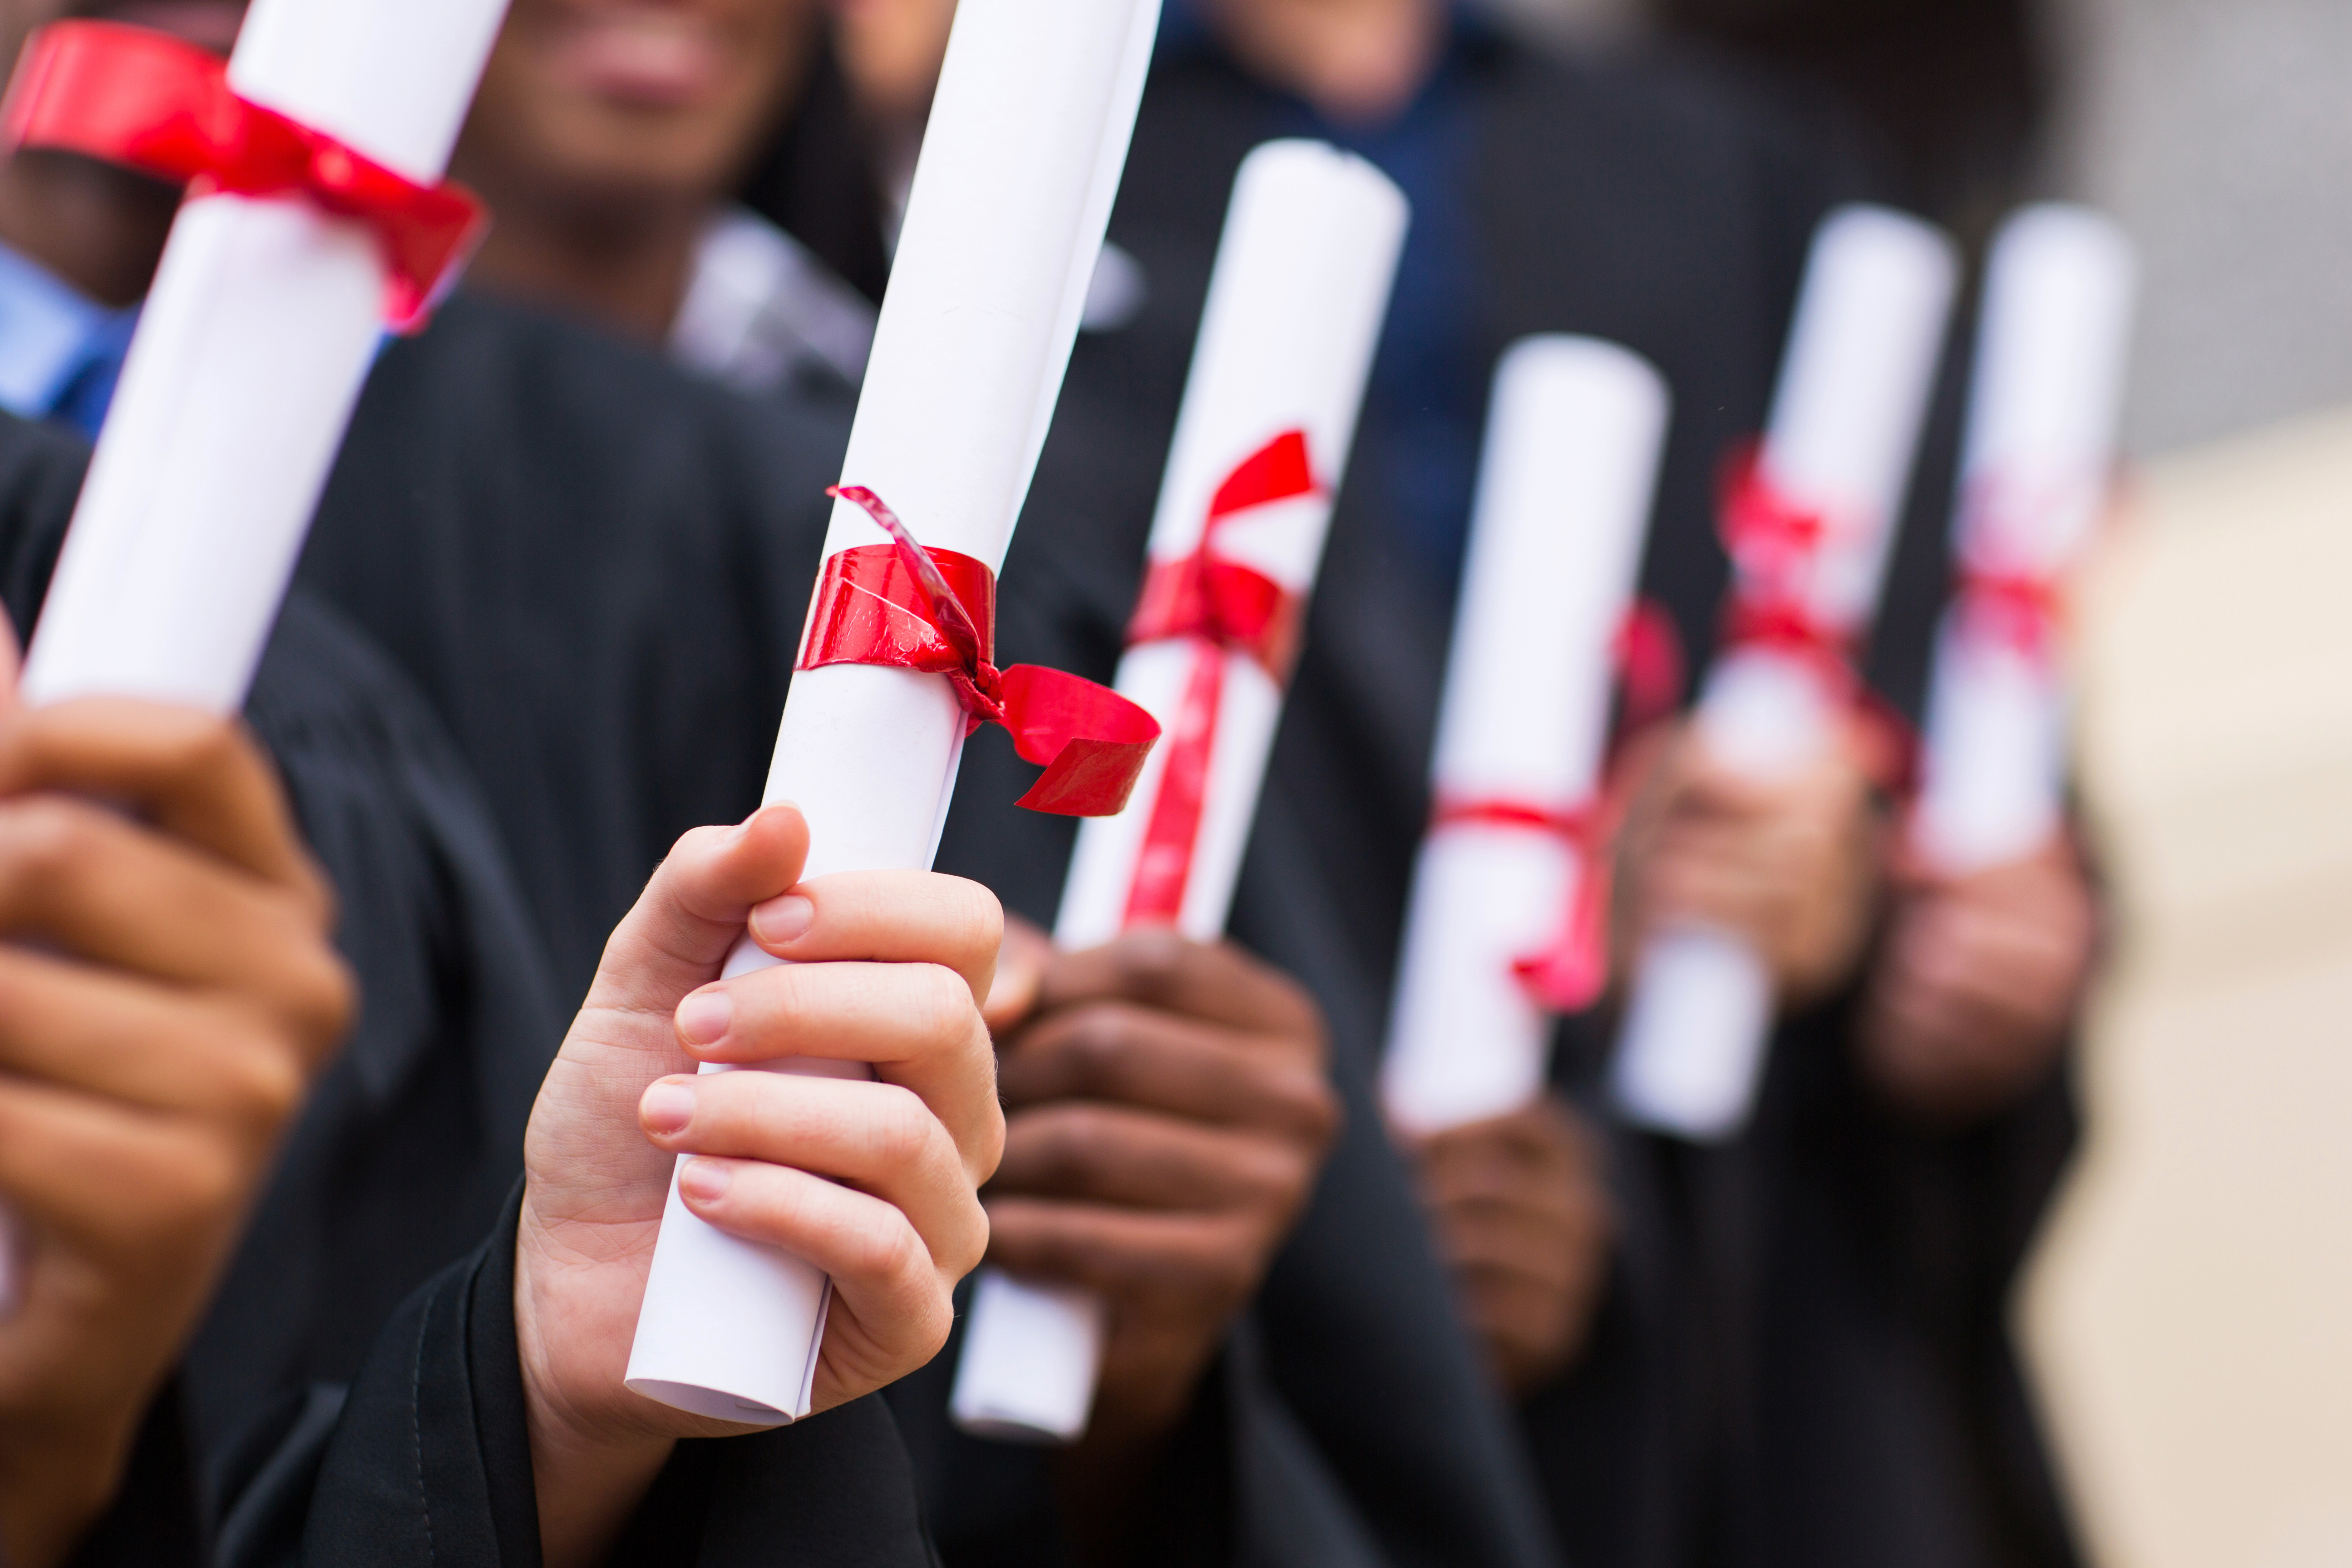 Does university really prepare graduates for the world of work?